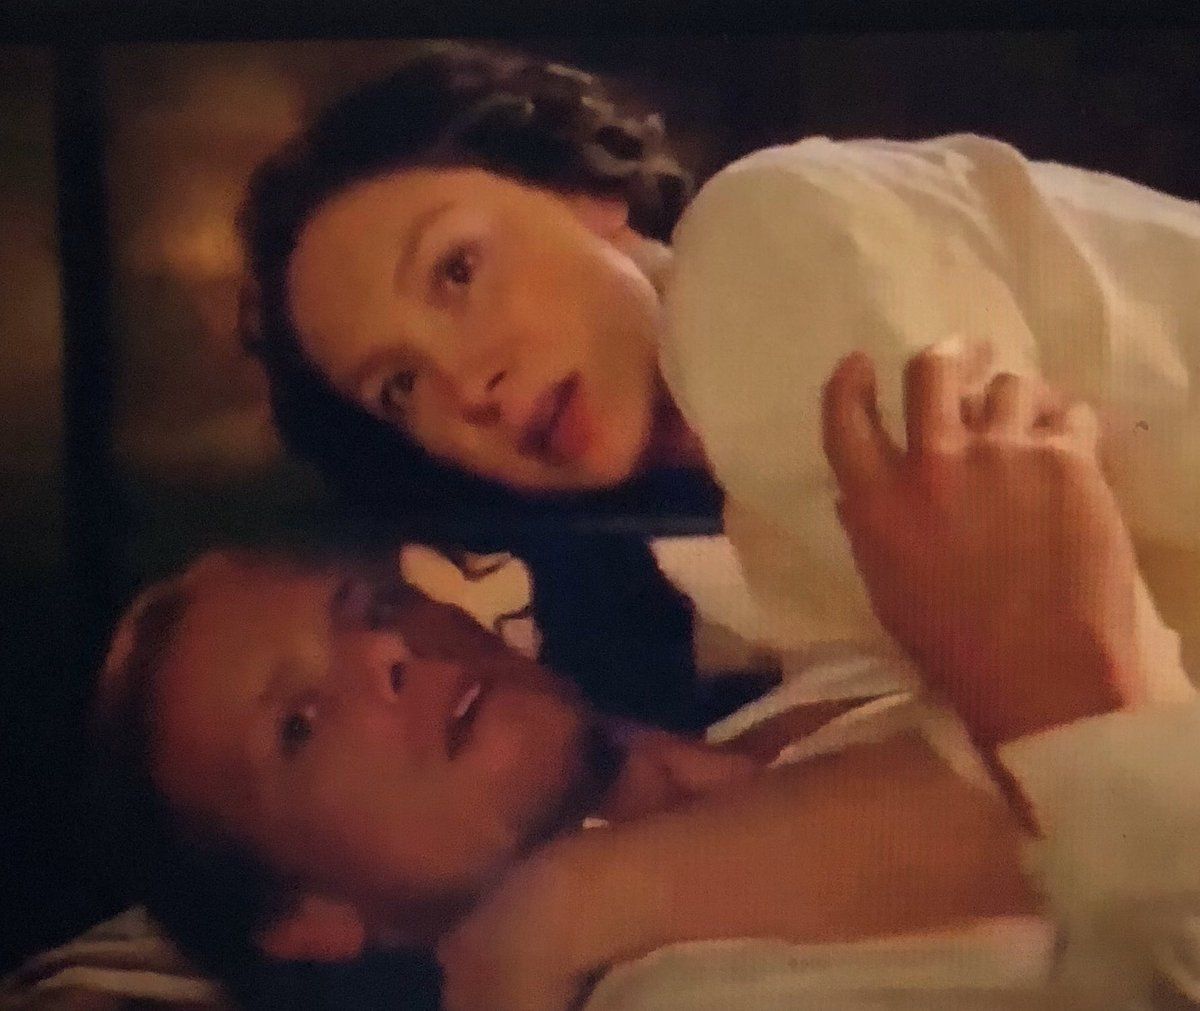 No comments about Grand Pa and Grand Ma gettin' interrupted?? #OutlanderSeason5Premiere  #TheFrasers  #Outlander<br>http://pic.twitter.com/mPuZgITQTo